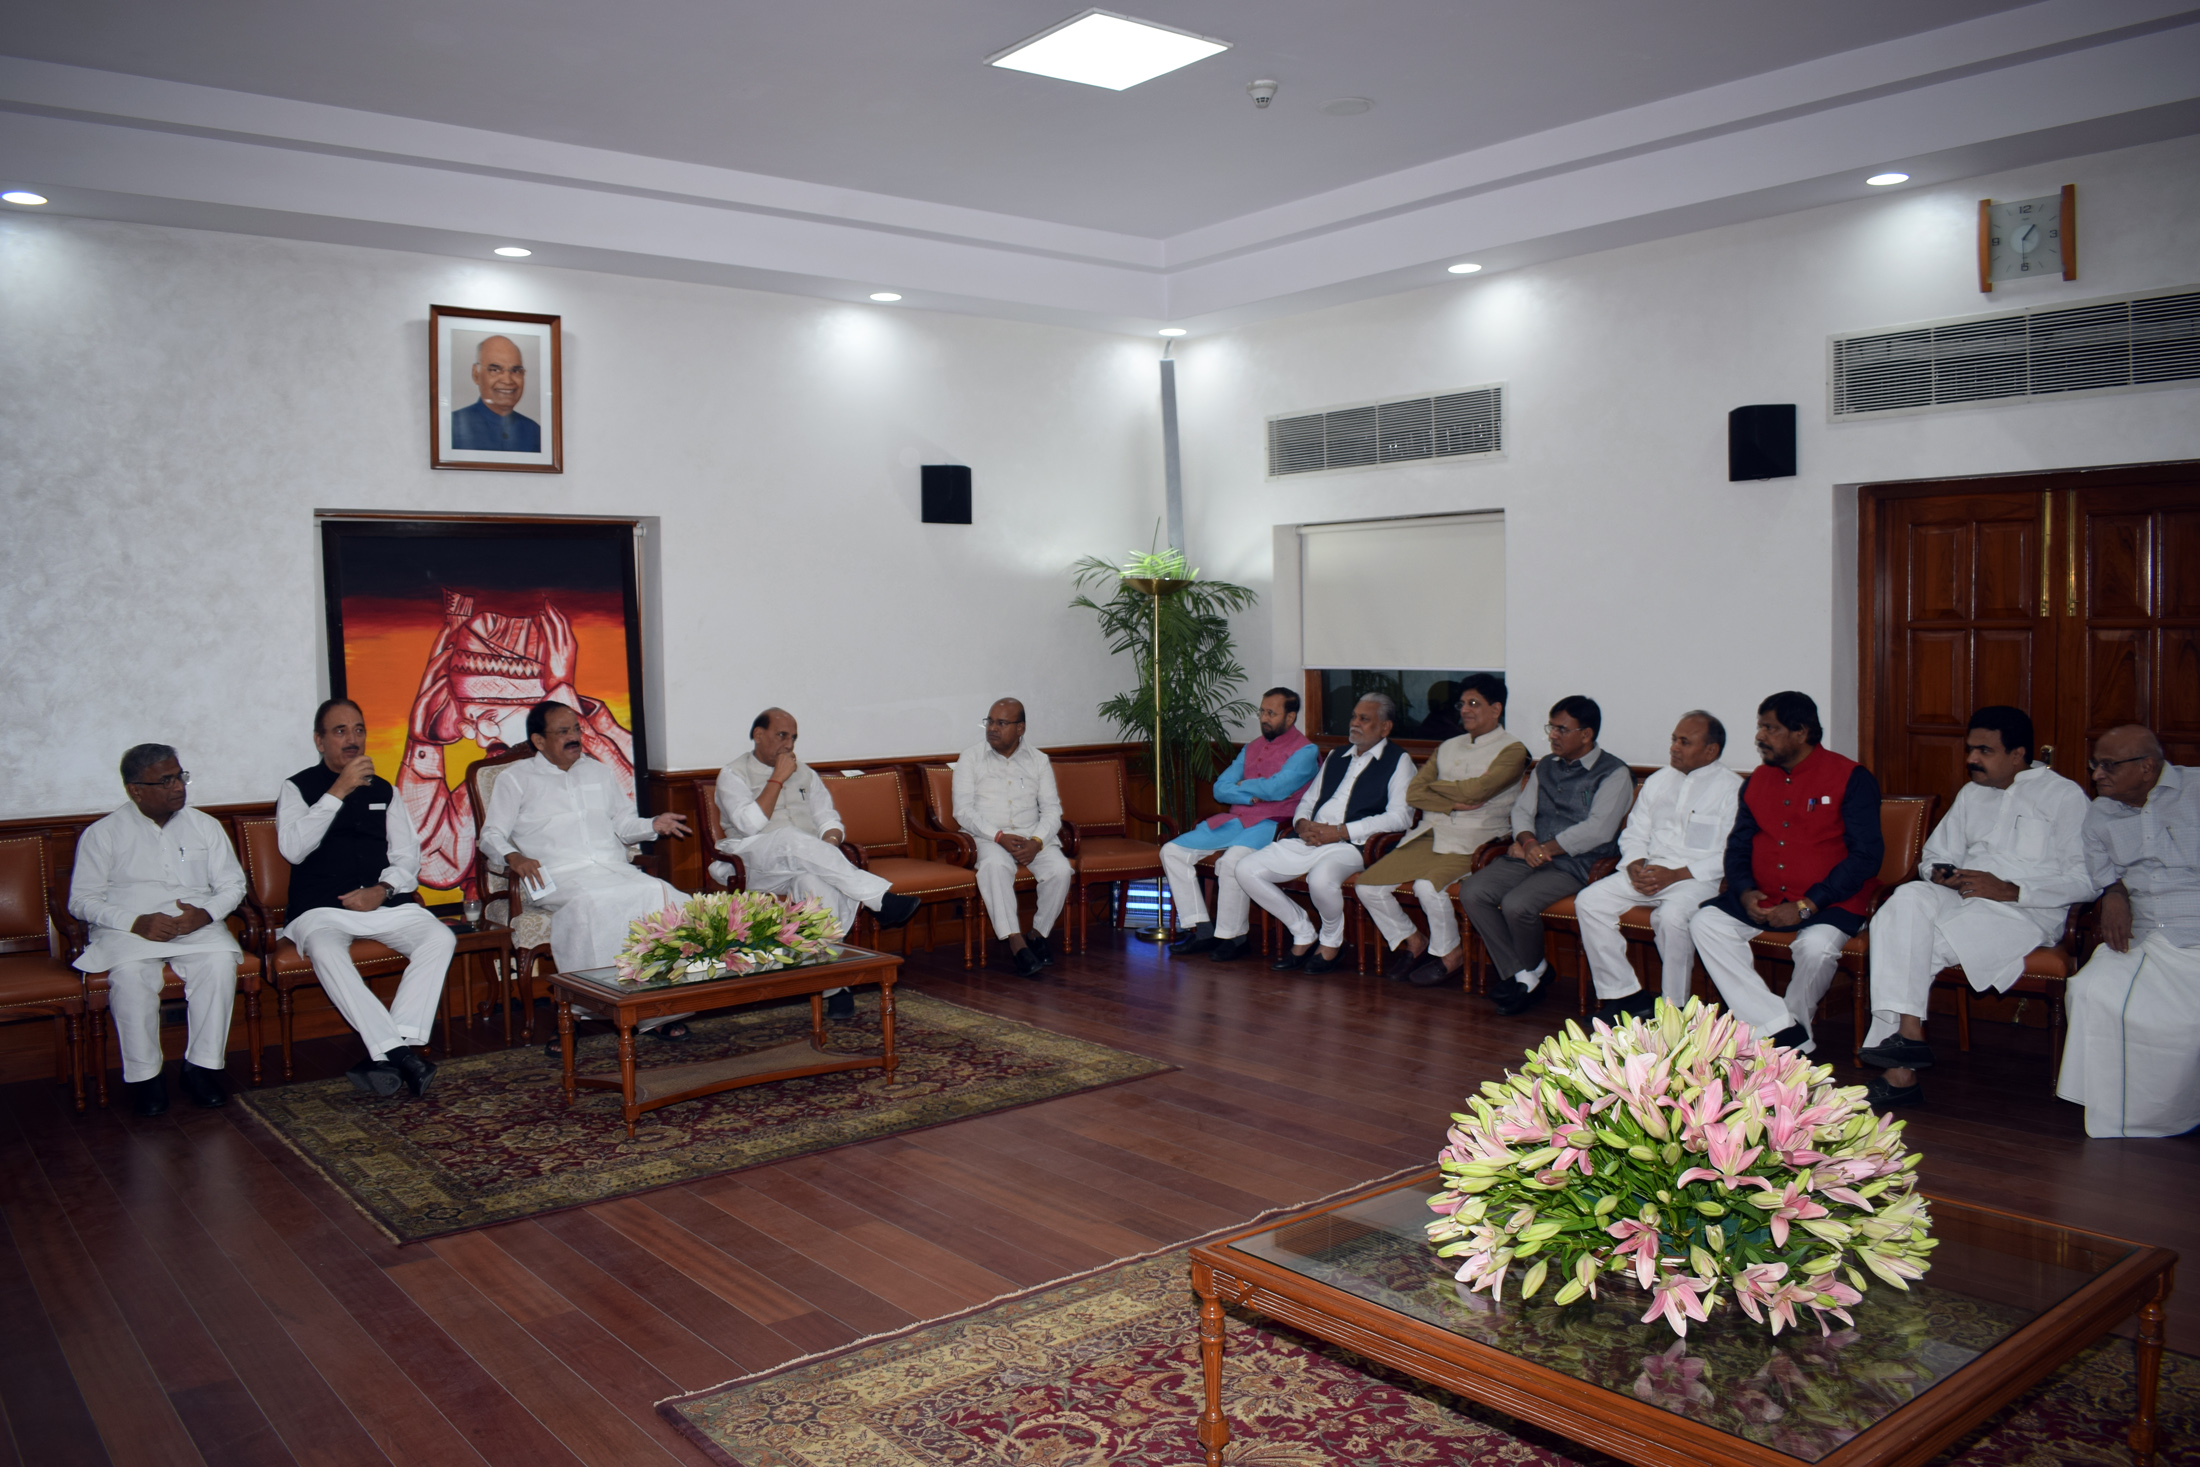 The Vice President, Shri M. Venkaiah Naidu at a Luncheon Meeting hosted by him to the Floor Leaders of Rajya Sabha, in New Delhi on June 20, 2019. The Deputy Chairman of Rajya Sabha, Shri Harivansh, the Leader of the House, Shri Thaawar Chand Gehlot, the Leader of the Opposition, Shri Gulam Nabi Azad, the Union Minister for Defence, Shri Rajnath Singh, the Union Minister for Parliamentary Affairs, Coal and Mines, Shri Pralhad Joshi, the Union Minister for Railways and Commerce & Industry, Shri Piyush Goyal,